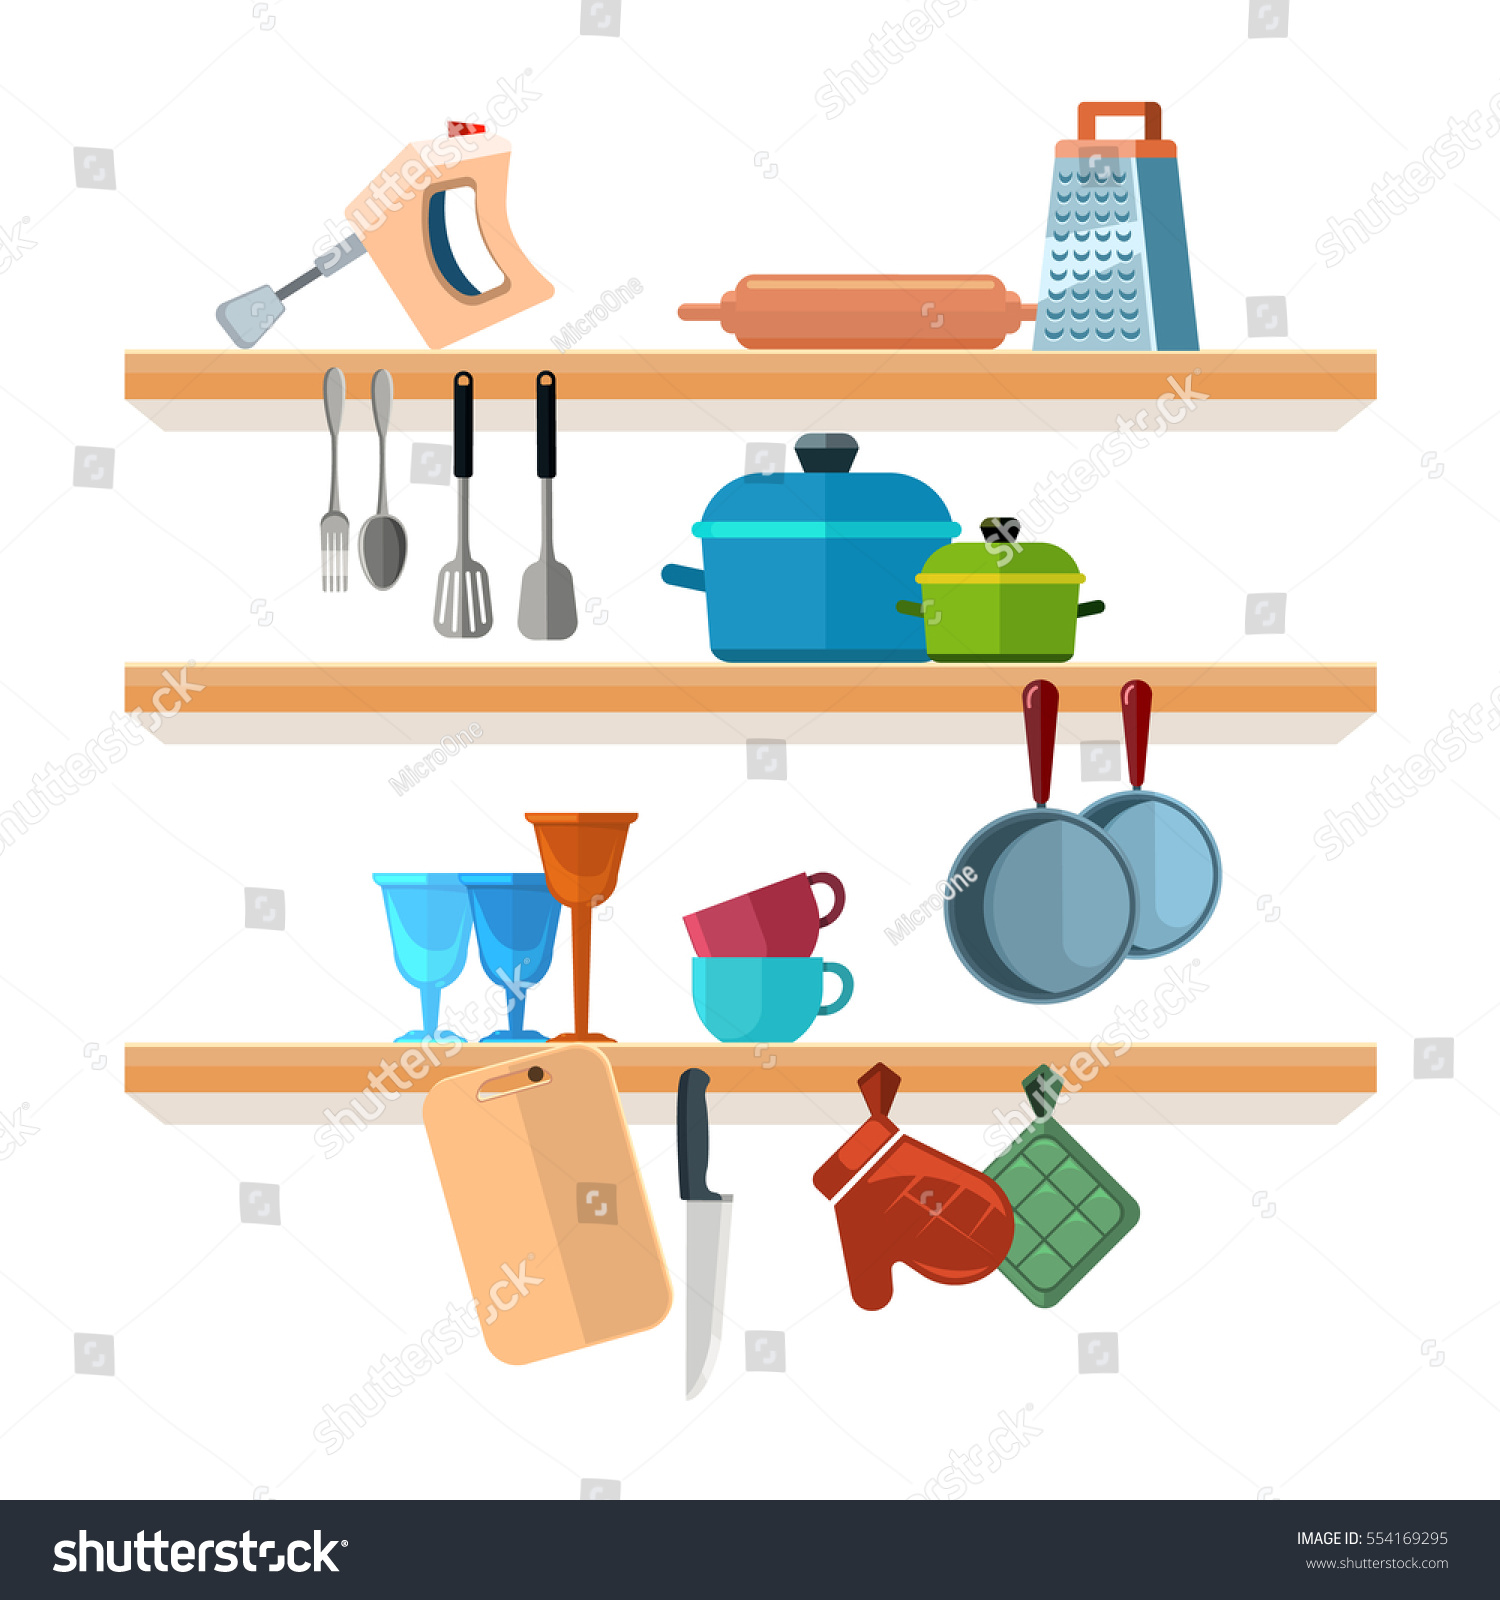 Kitchen Shelves Cooking Tools Hanging Pots Stock Vector